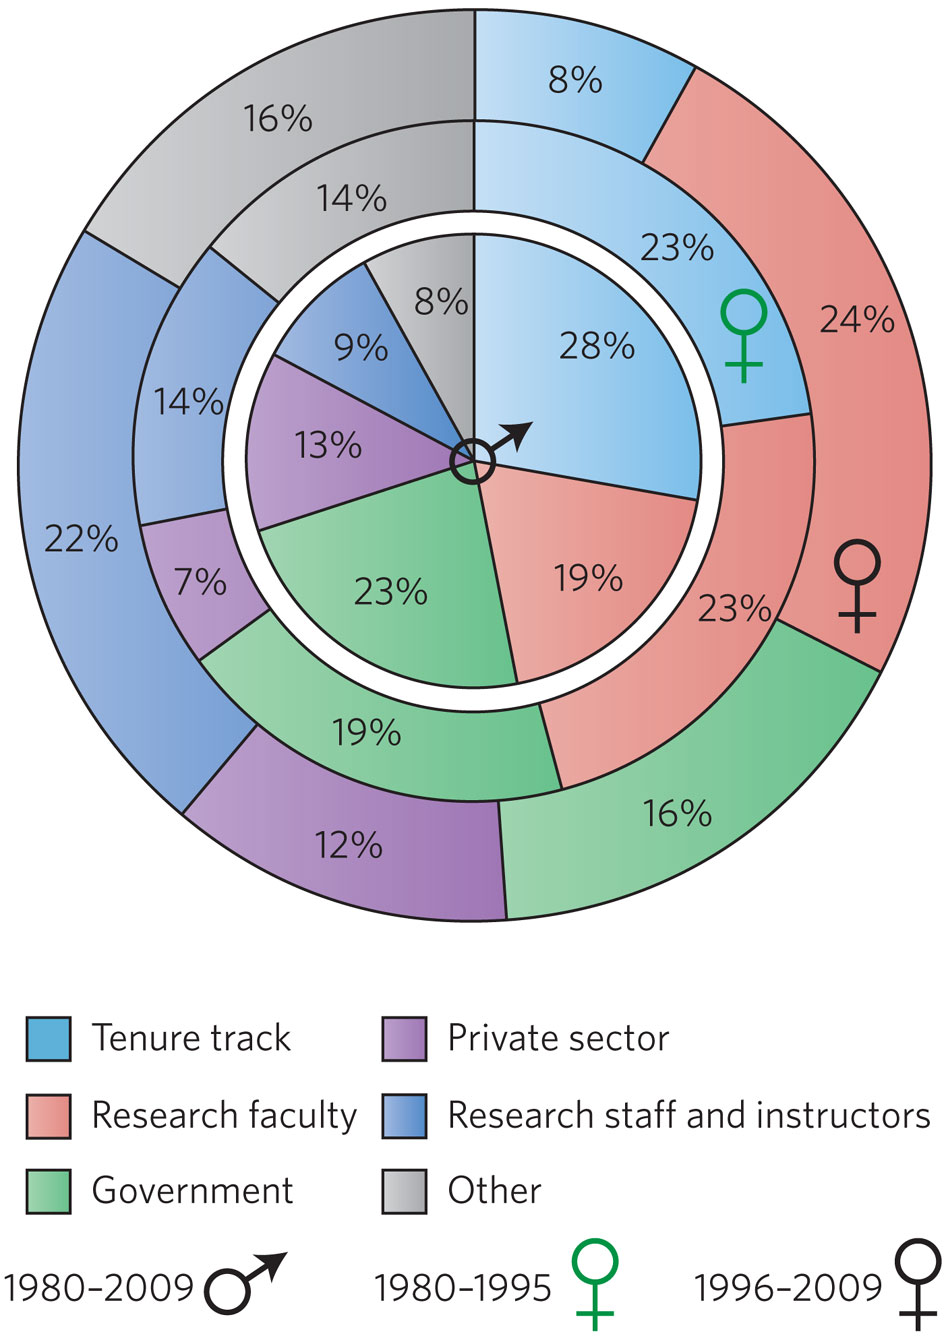 Shown in light blue, 28 percent of the men in the sample (inner circle) obtained tenured or tenure-track positions, while the fraction of women holding these positions dropped from 23 percent (middle circle) to 8 percent (outer circle).